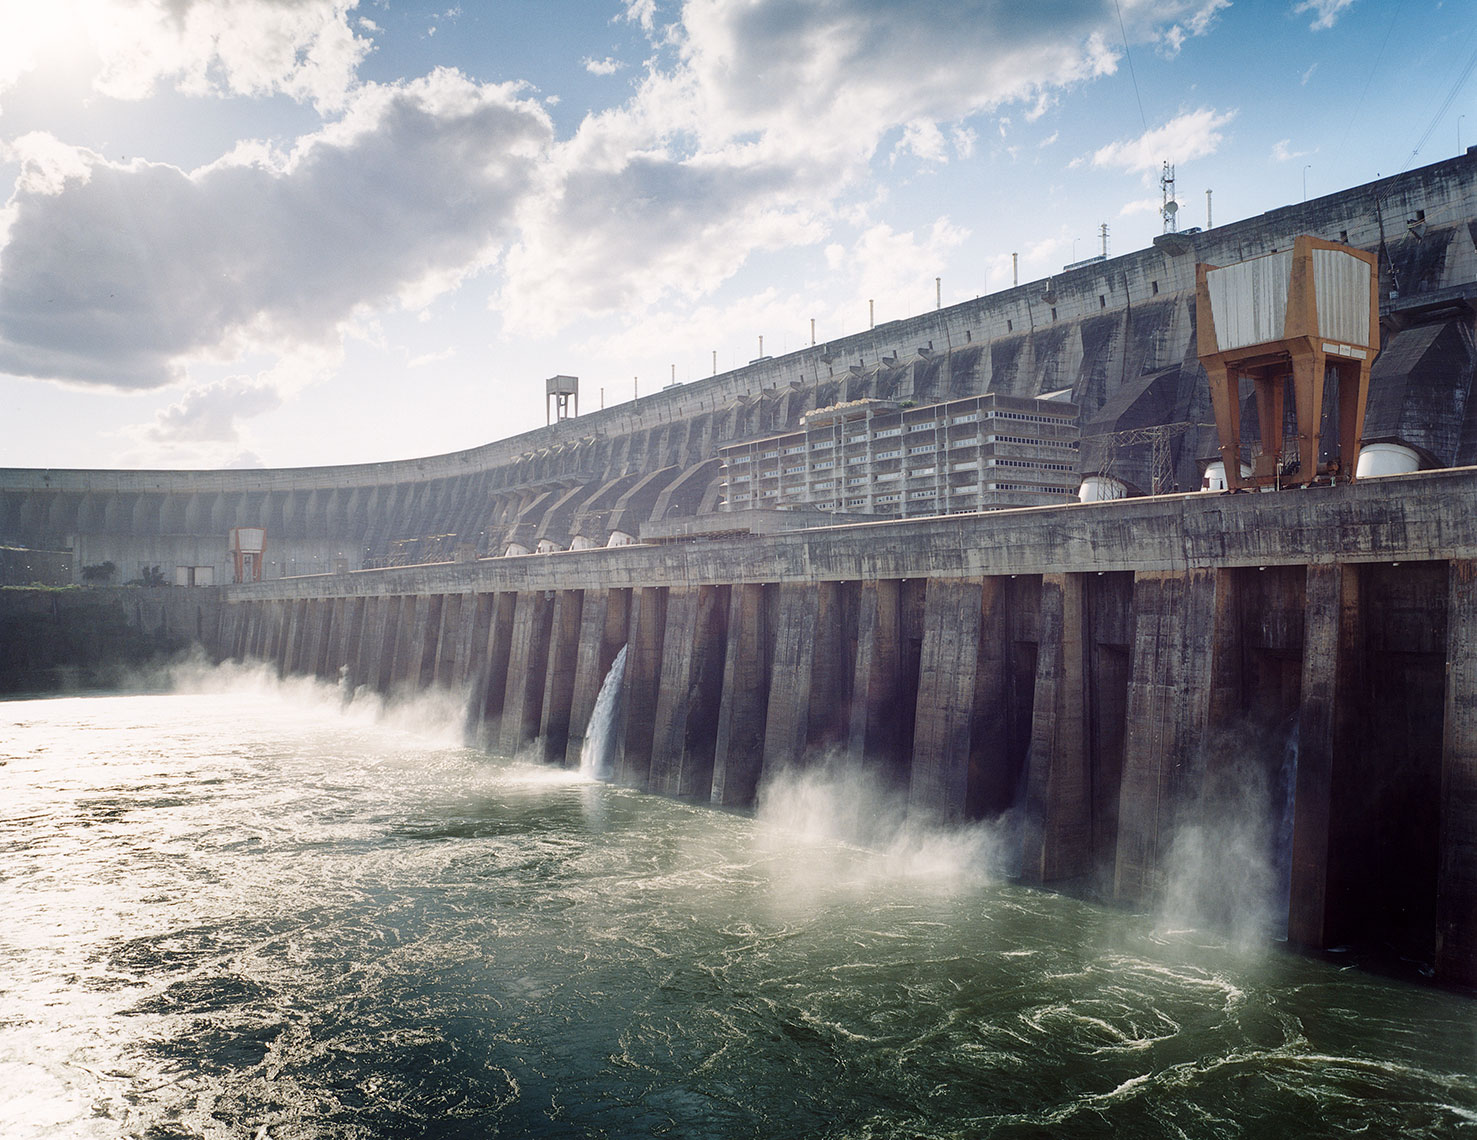 Hydro_Power_Projects_04_1140